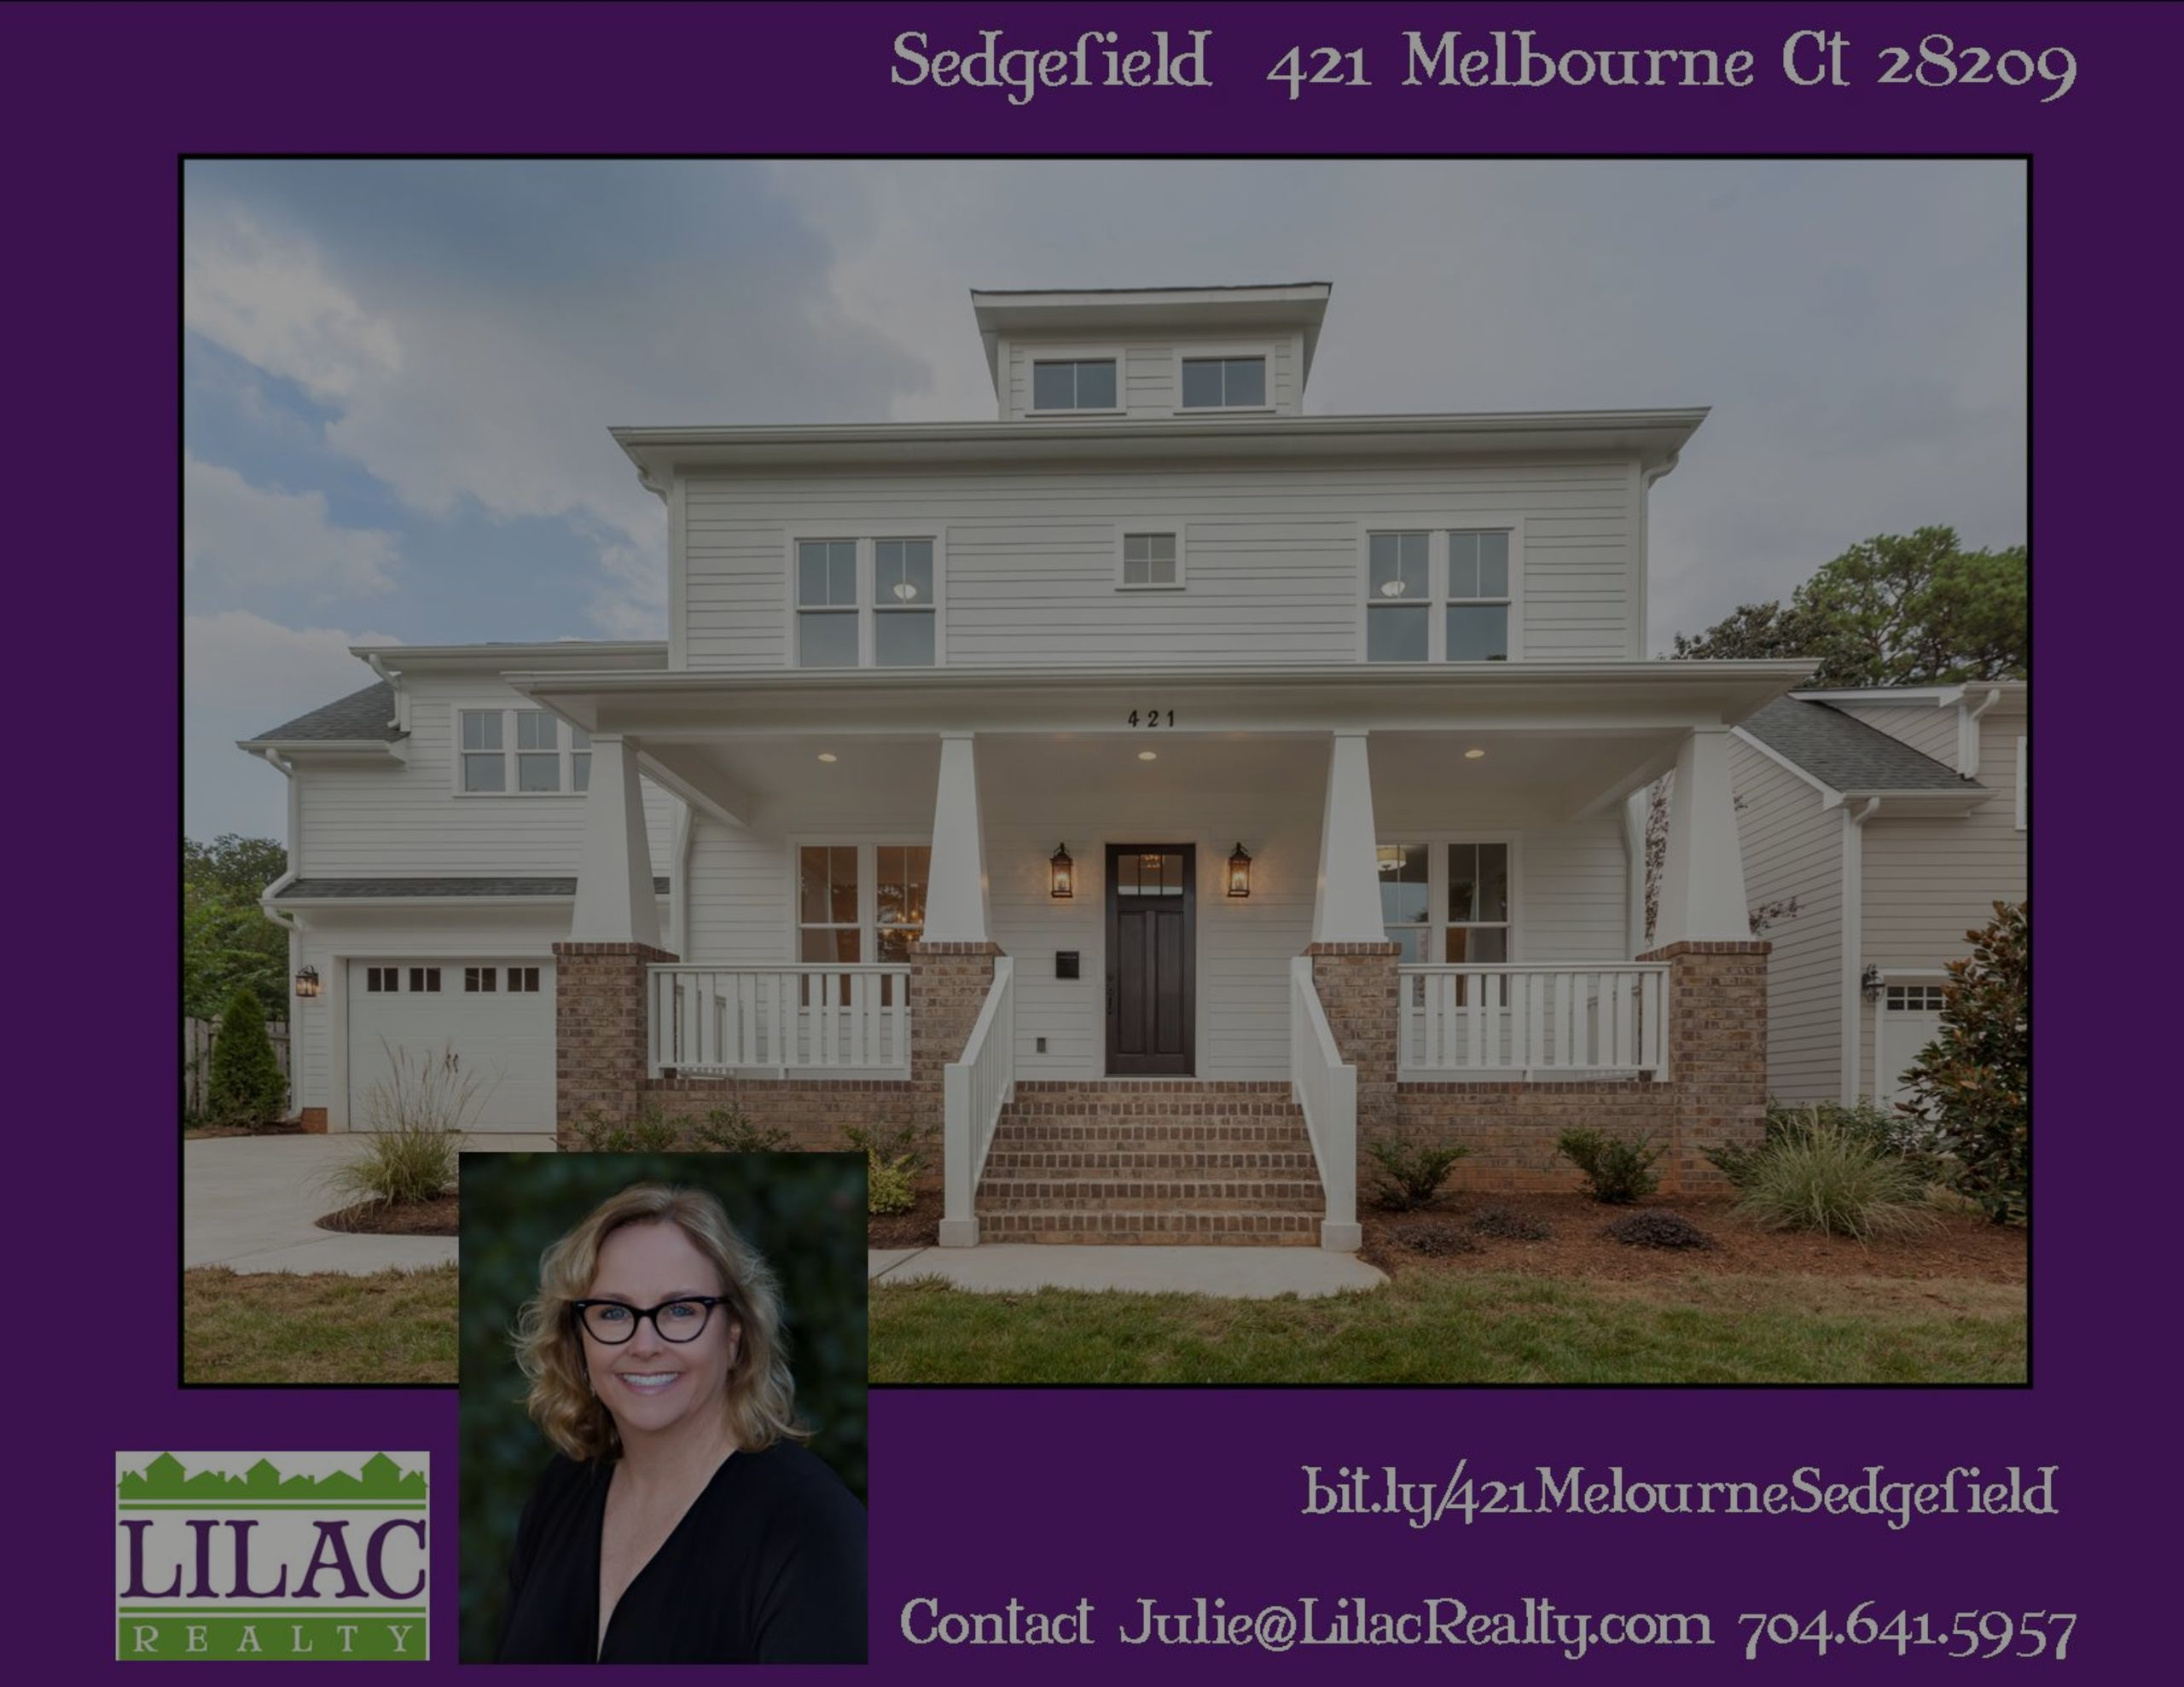 Sedgefield 421 Melbourne Ct New Construction